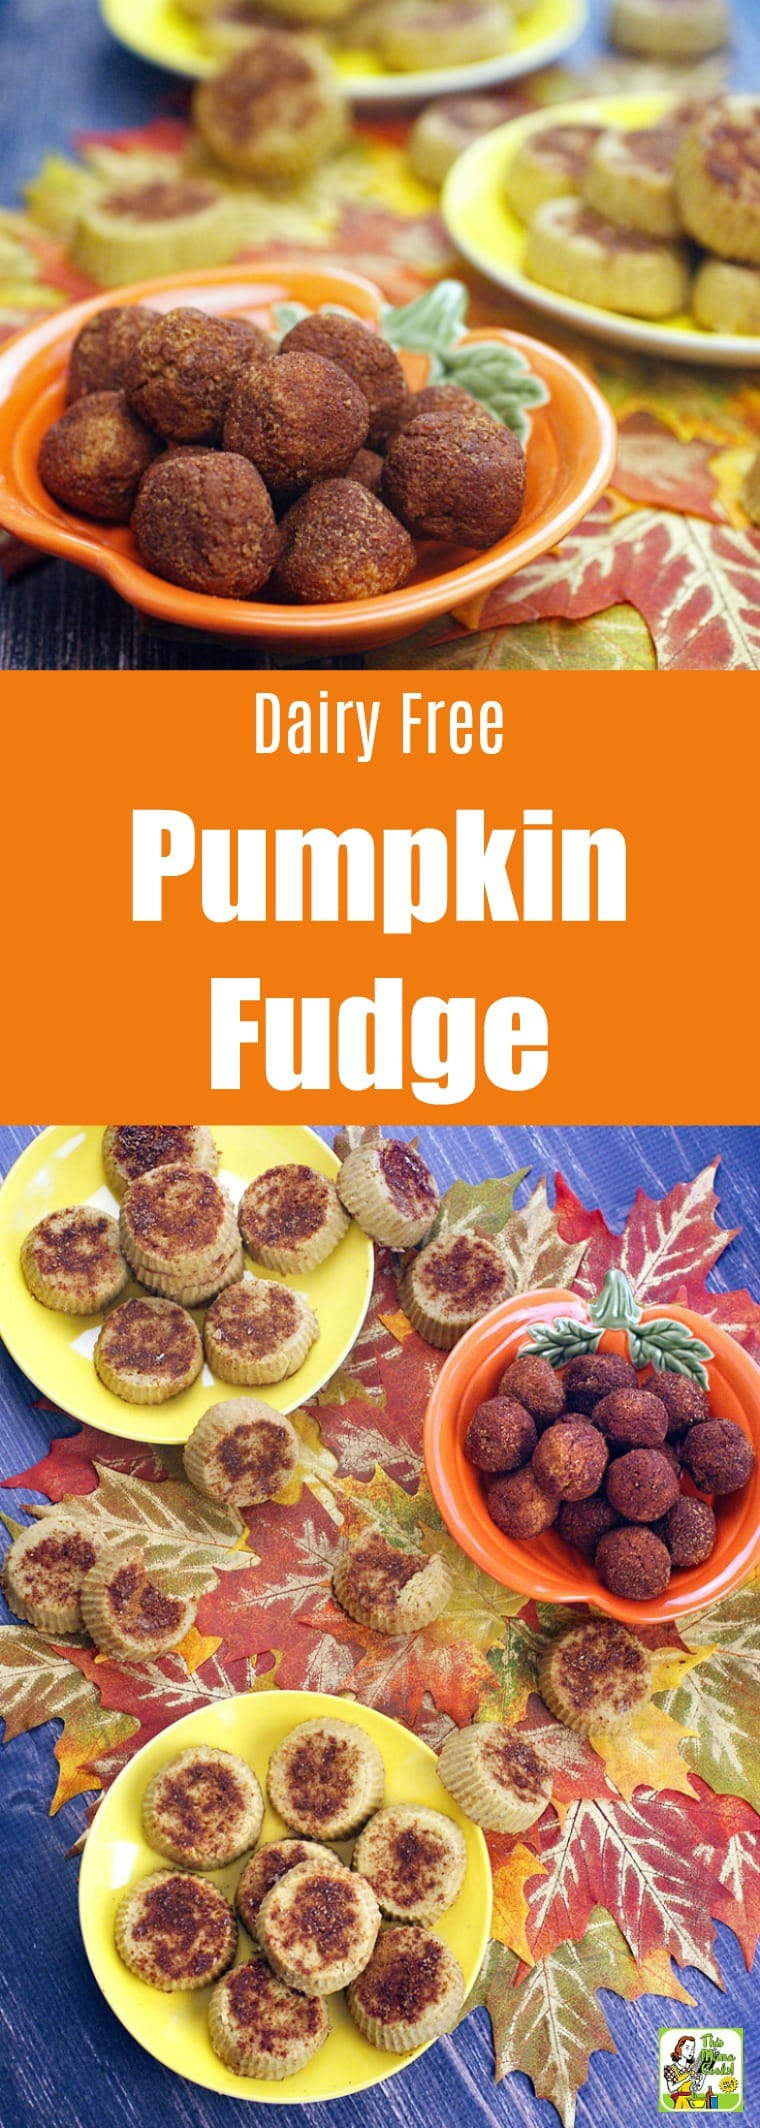 This Dairy Free Pumpkin Fudge recipe is gluten-free, dairy-free, vegan, and low in sugar. Can be made into fudge balls or mini pies. No marshmallow cream or condensed milk for a wholesome pumpkin spice treat. #recipe #easy #recipeoftheday #healthyrecipes #glutenfree #easyrecipes #snack #snacks #dessert #dessertrecipes #pumpkindessert #pumpkinrecipe #pumpkin #pumpkinspice #pumpkindessert #halloween #thanksgiving #fudge #vegan #veganfood #veganrecipes #dairyfree